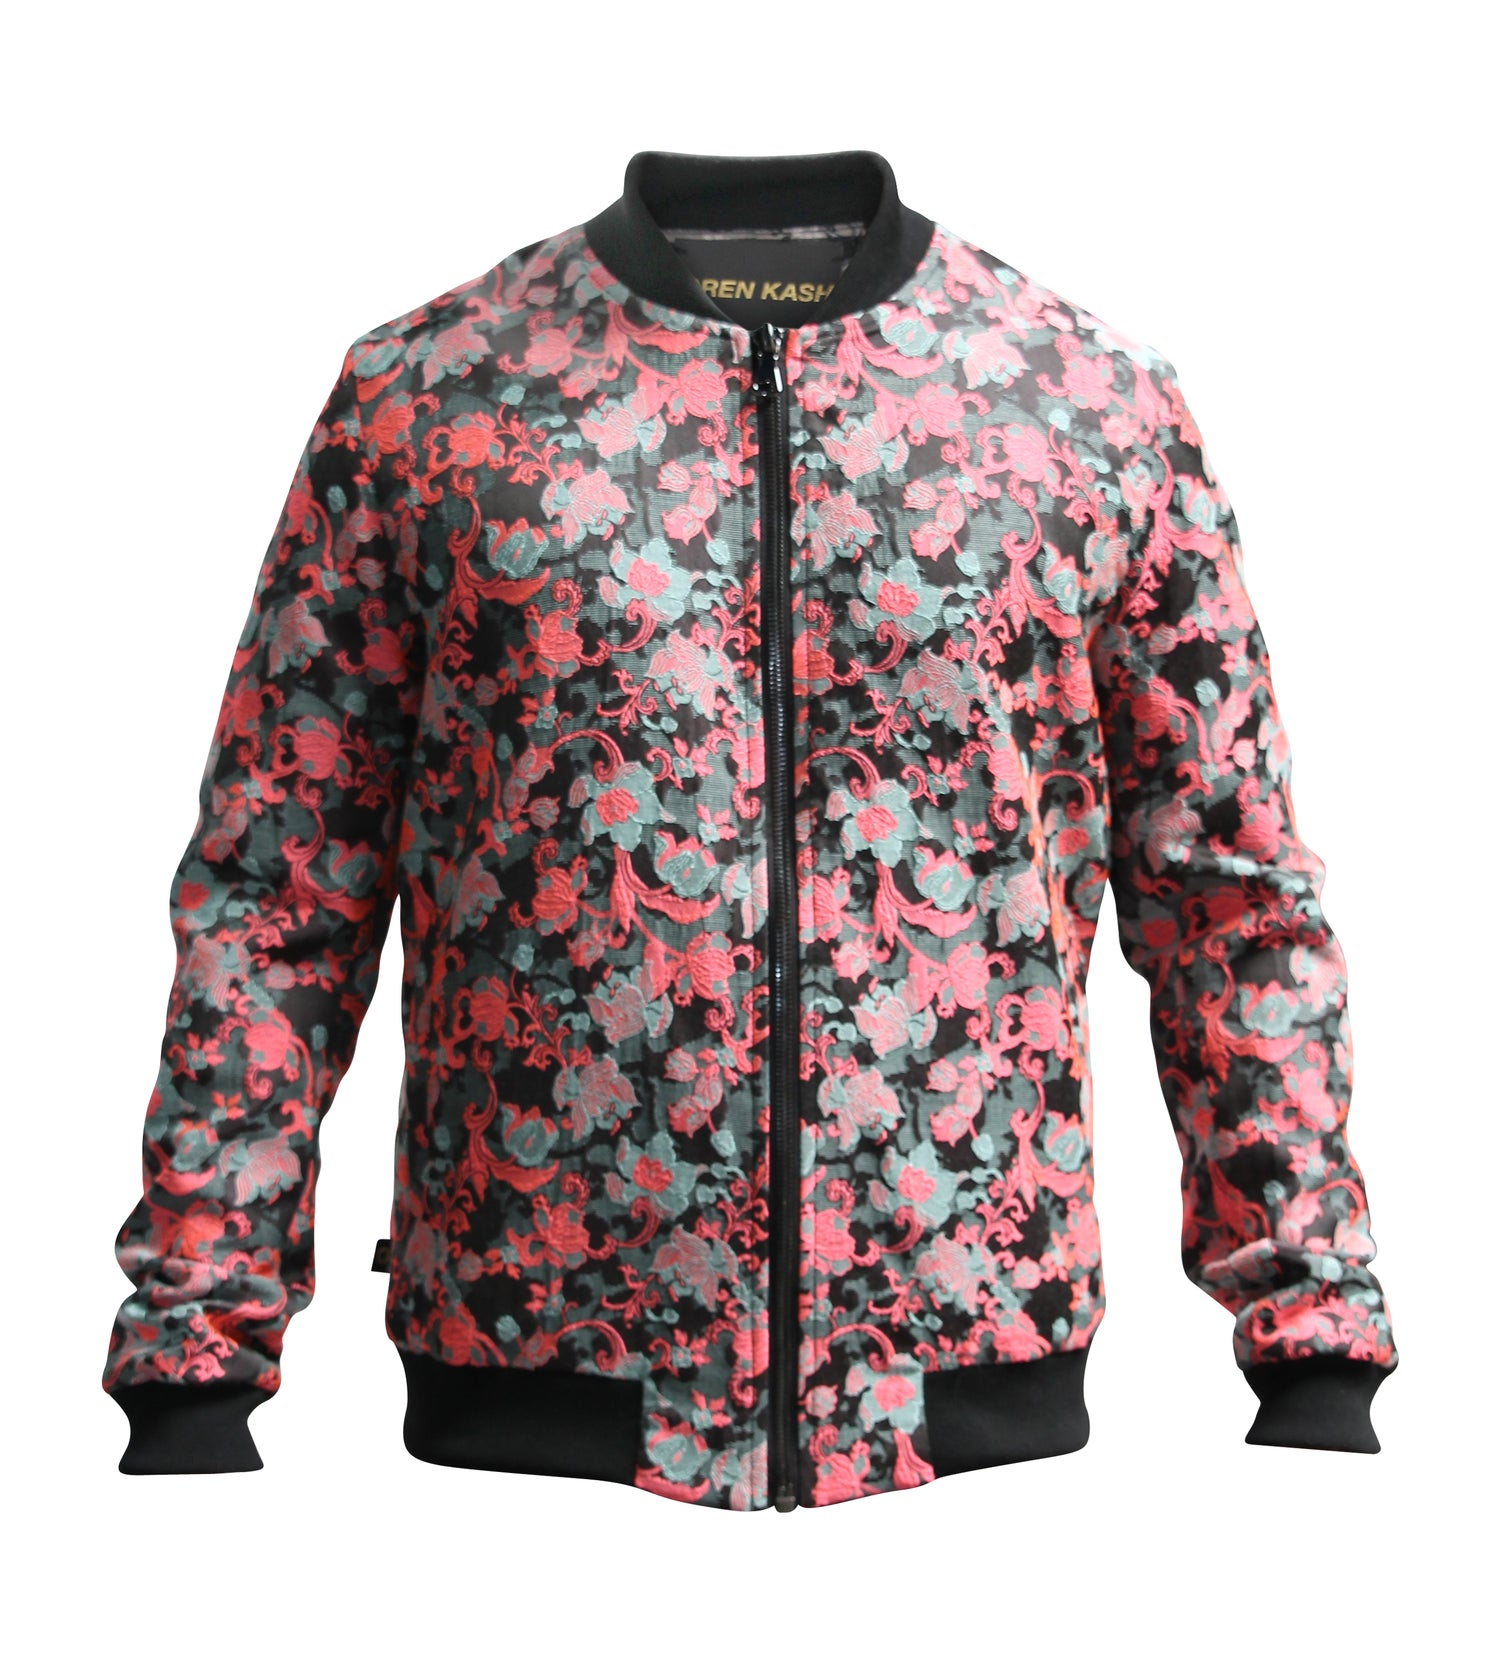 Image of Brocade Bomber